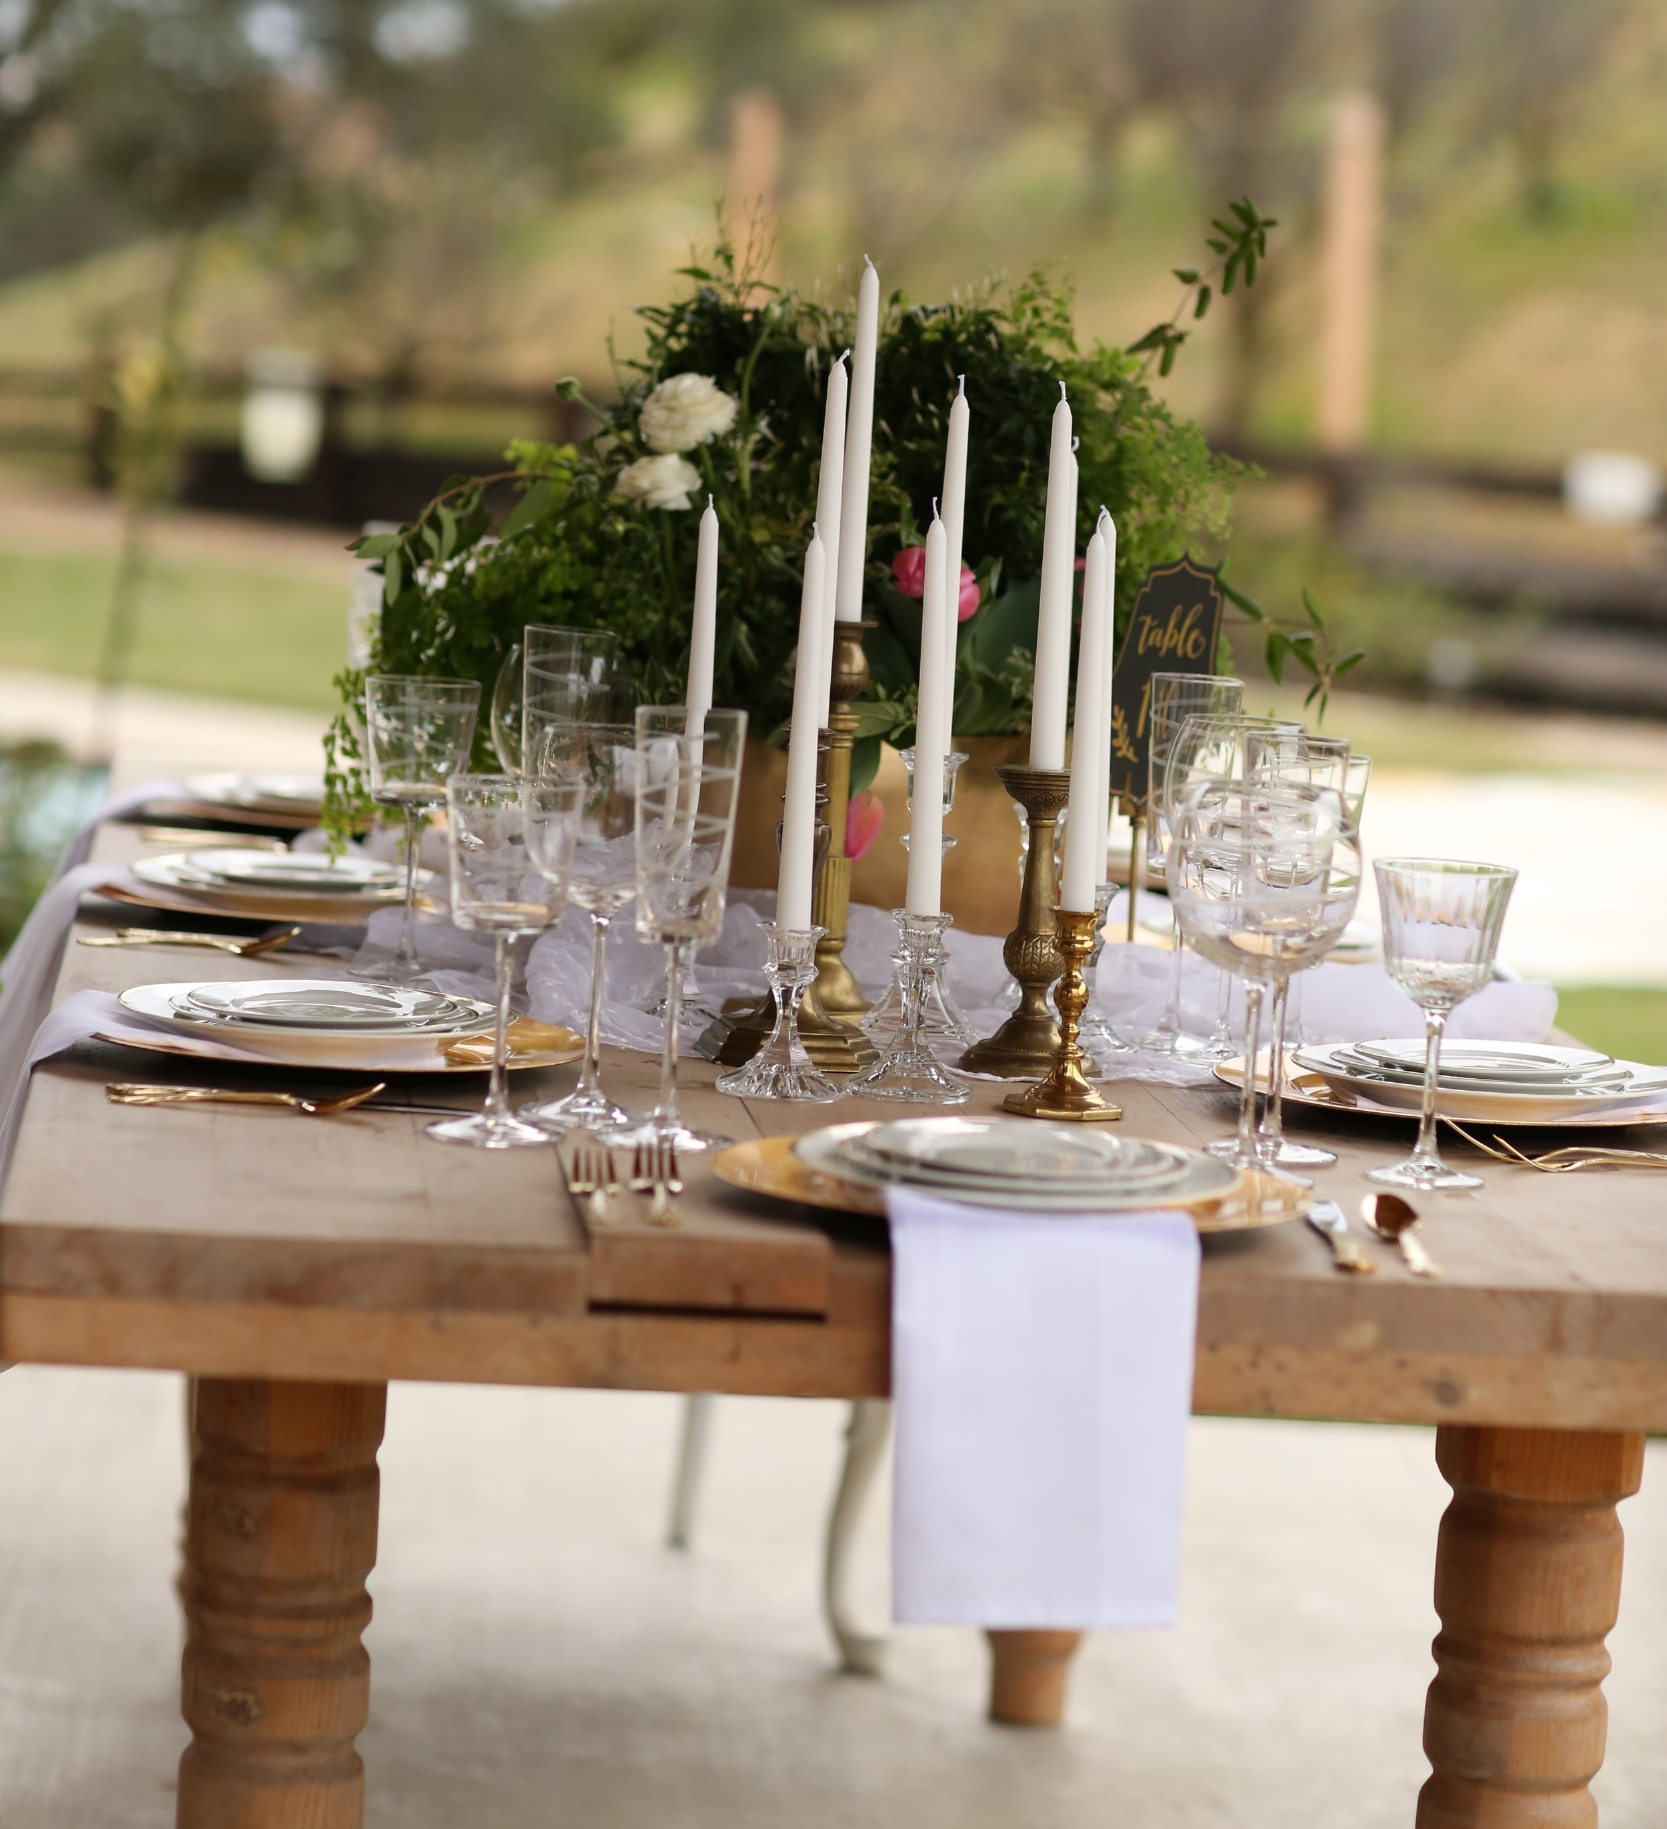 Farm table set with gold china, crystal, and gold chargers. Vintage rentals in Murrieta. Photo taken at Chateau Adare.